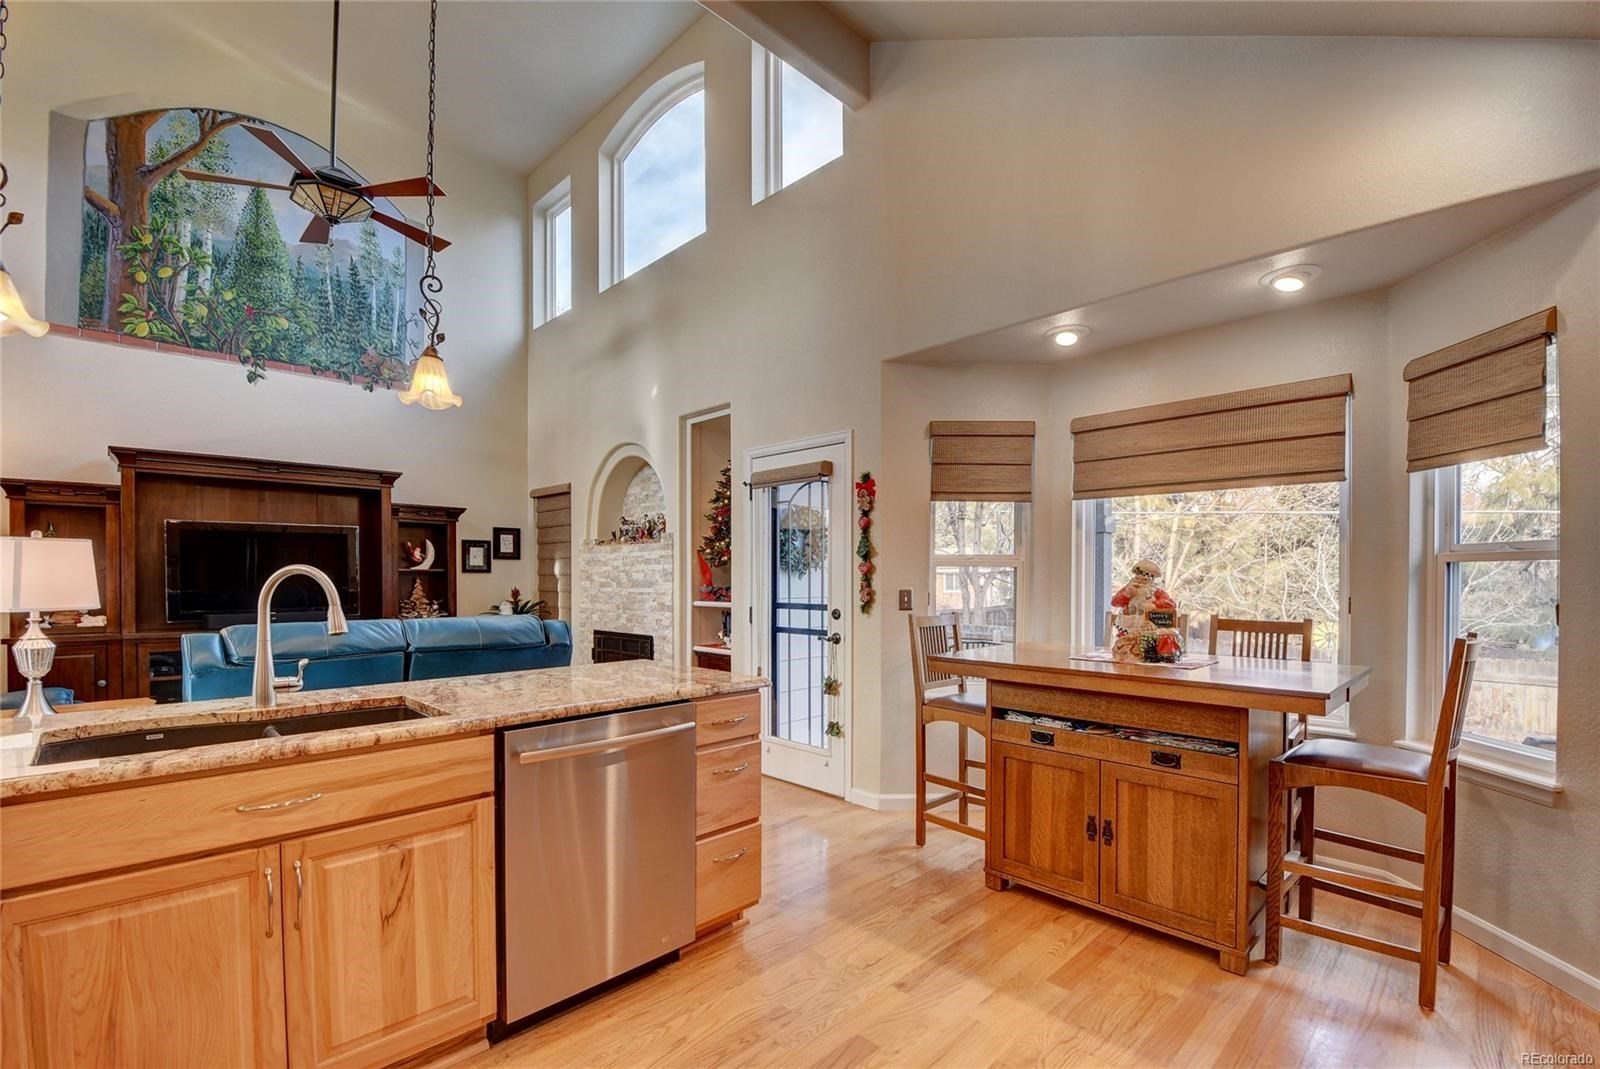 MLS# 9913436 - 11 - 5726 W 81st Place, Arvada, CO 80003